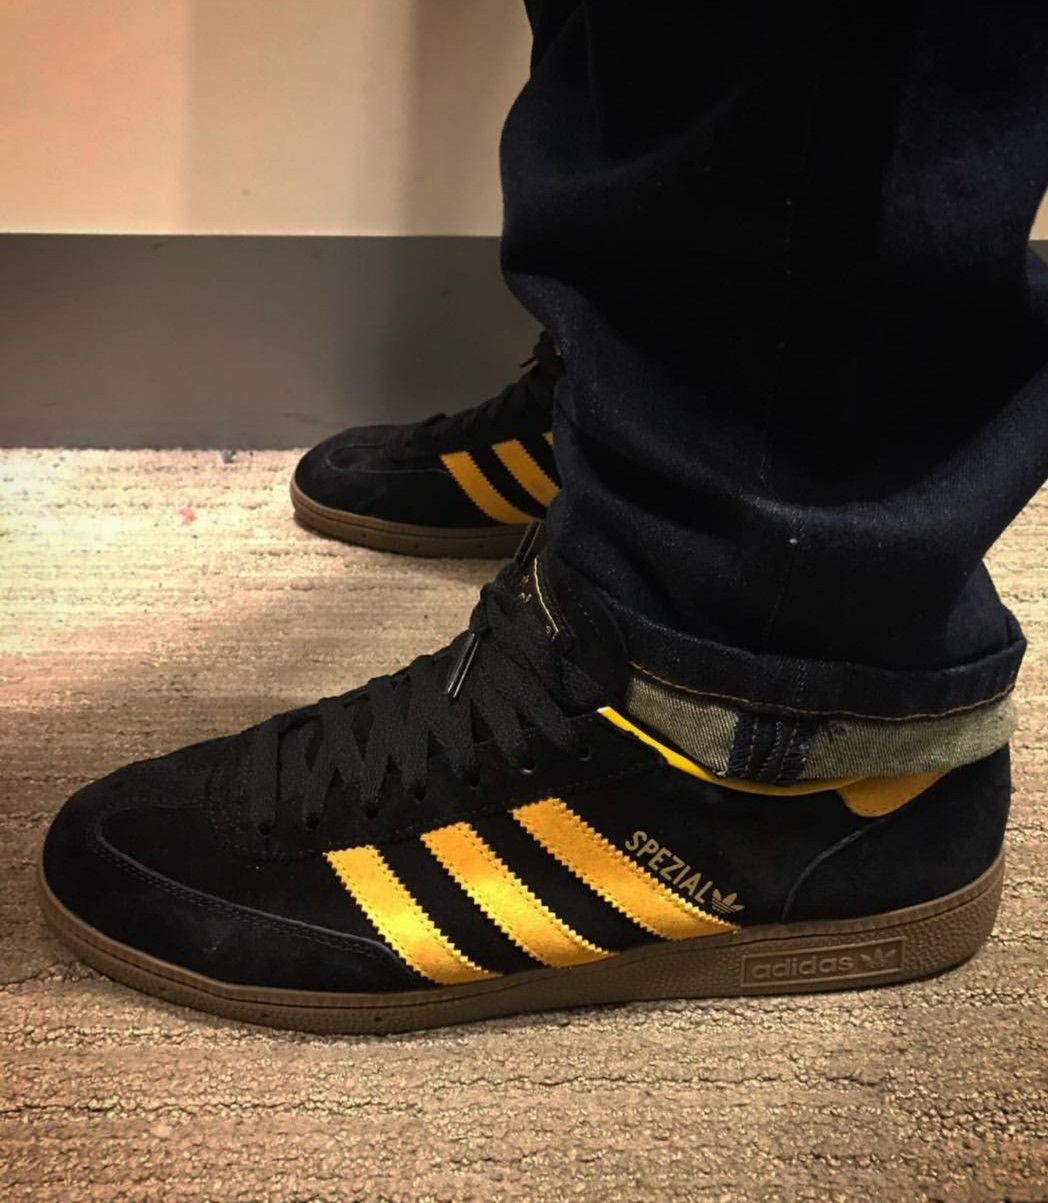 pick up 3d93d 6a2aa Adidas Spezial in black and yellow on feet on the street